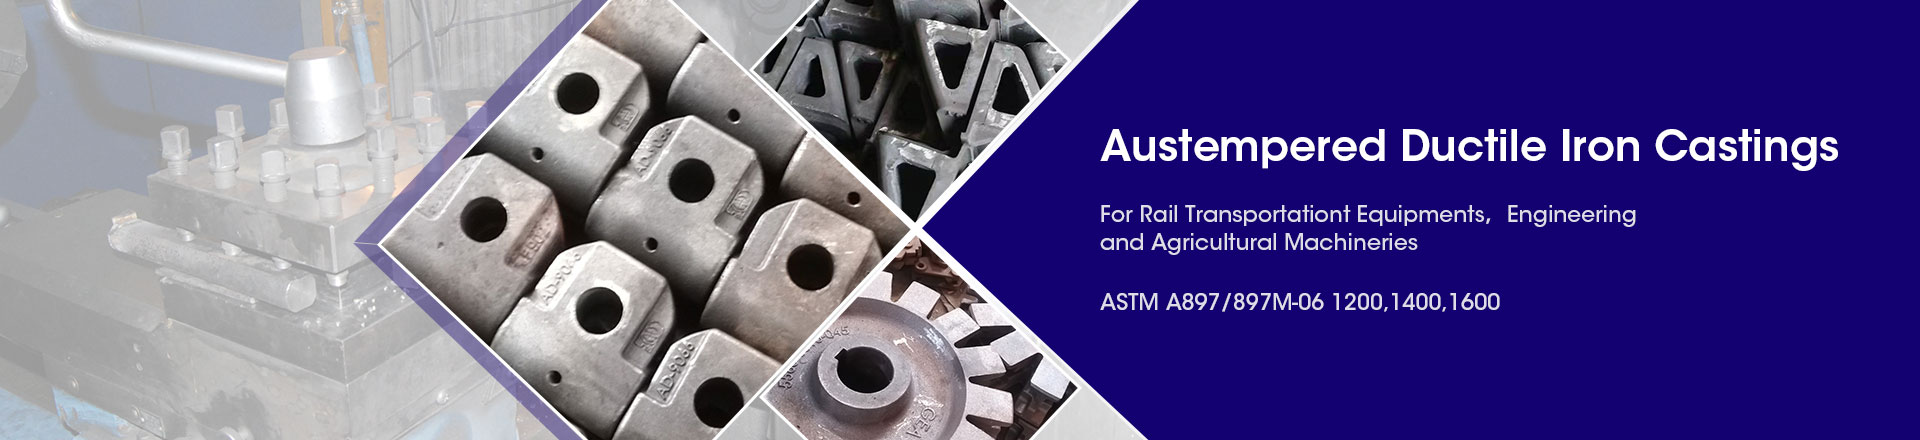 Train & Railway Parts